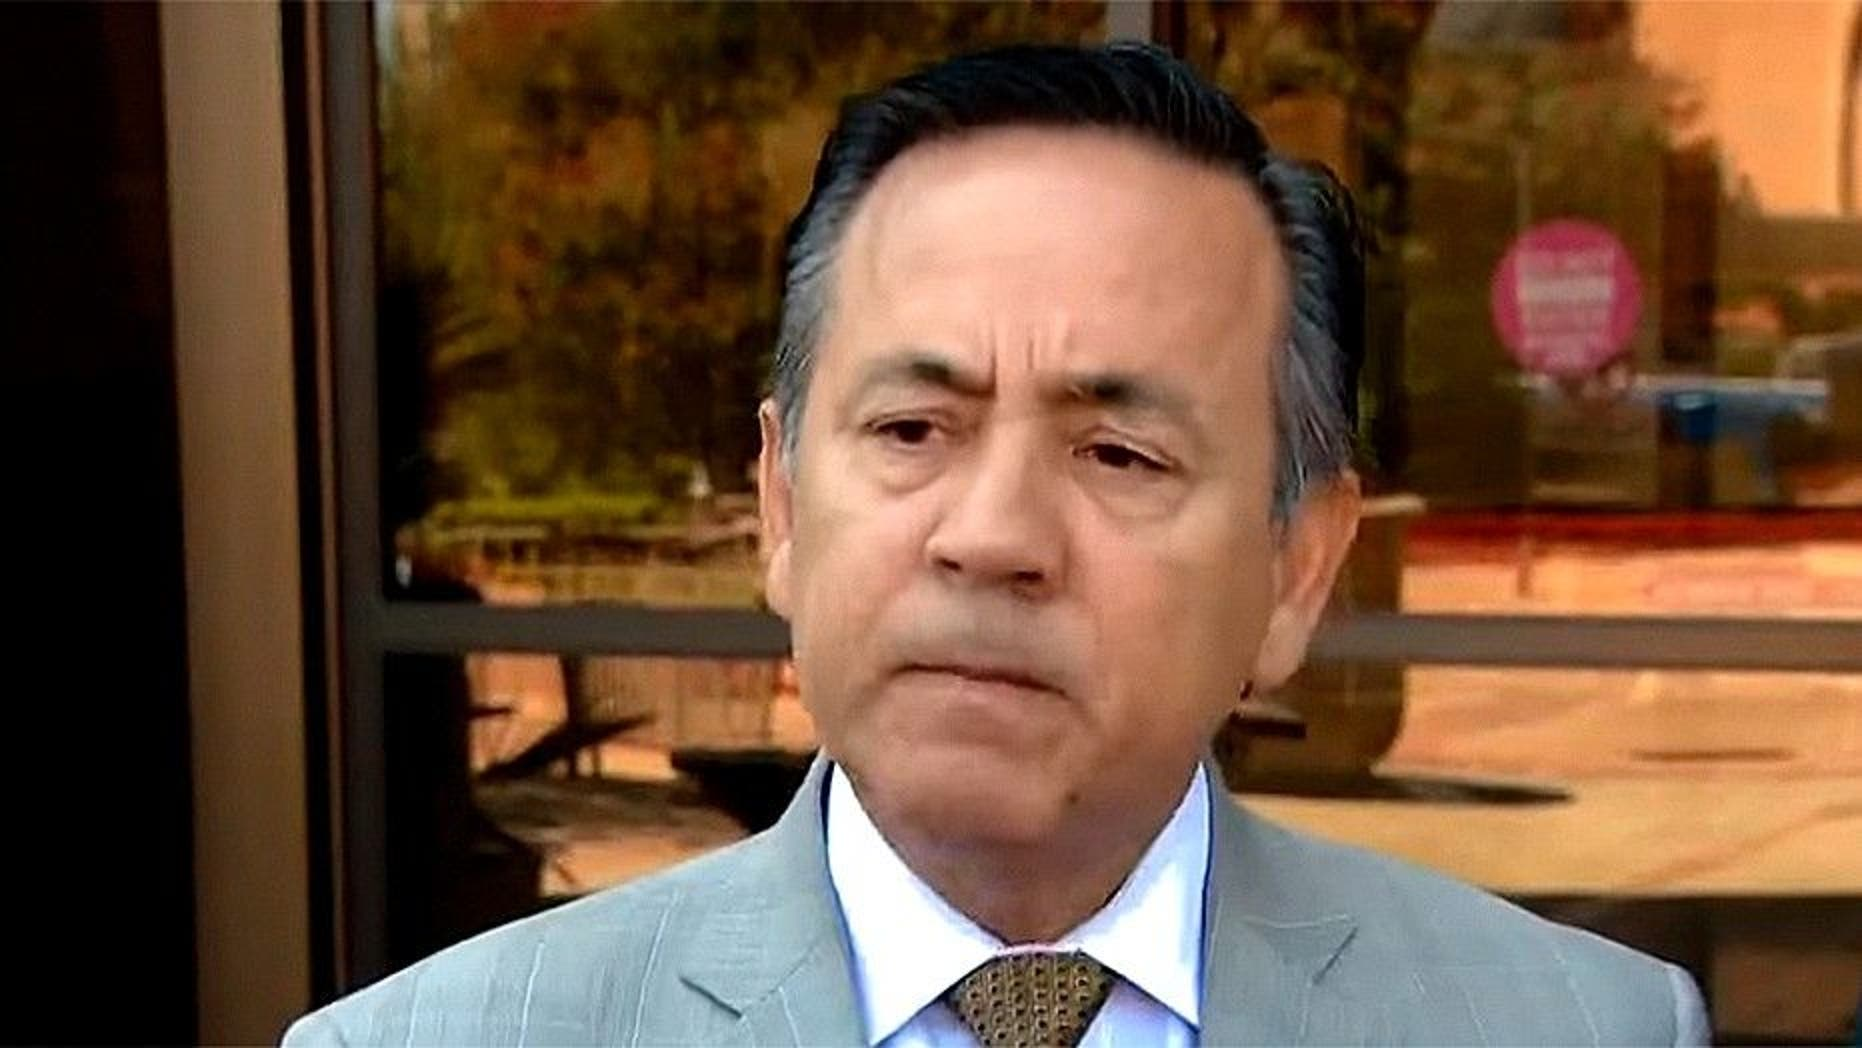 The wife of Texas state Sen. Carlos Uresti, D-San Antonio, filed divorce papers one week after his conviction on corruption charges, a report said.